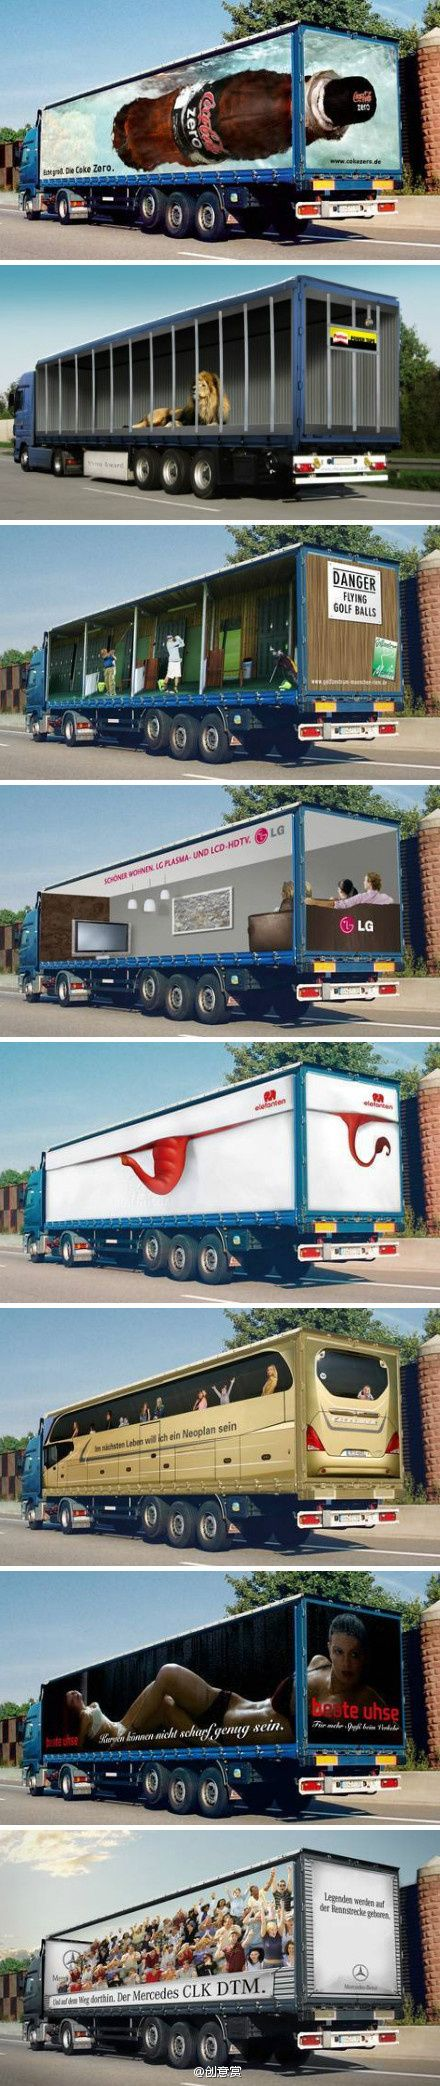 These trucks are a great example of how to push traditional advertising and make it something fresh and eye-catching. I think this might be concept work rather than actual ads, but the idea could be a great way to utilize semis, buses, and more.